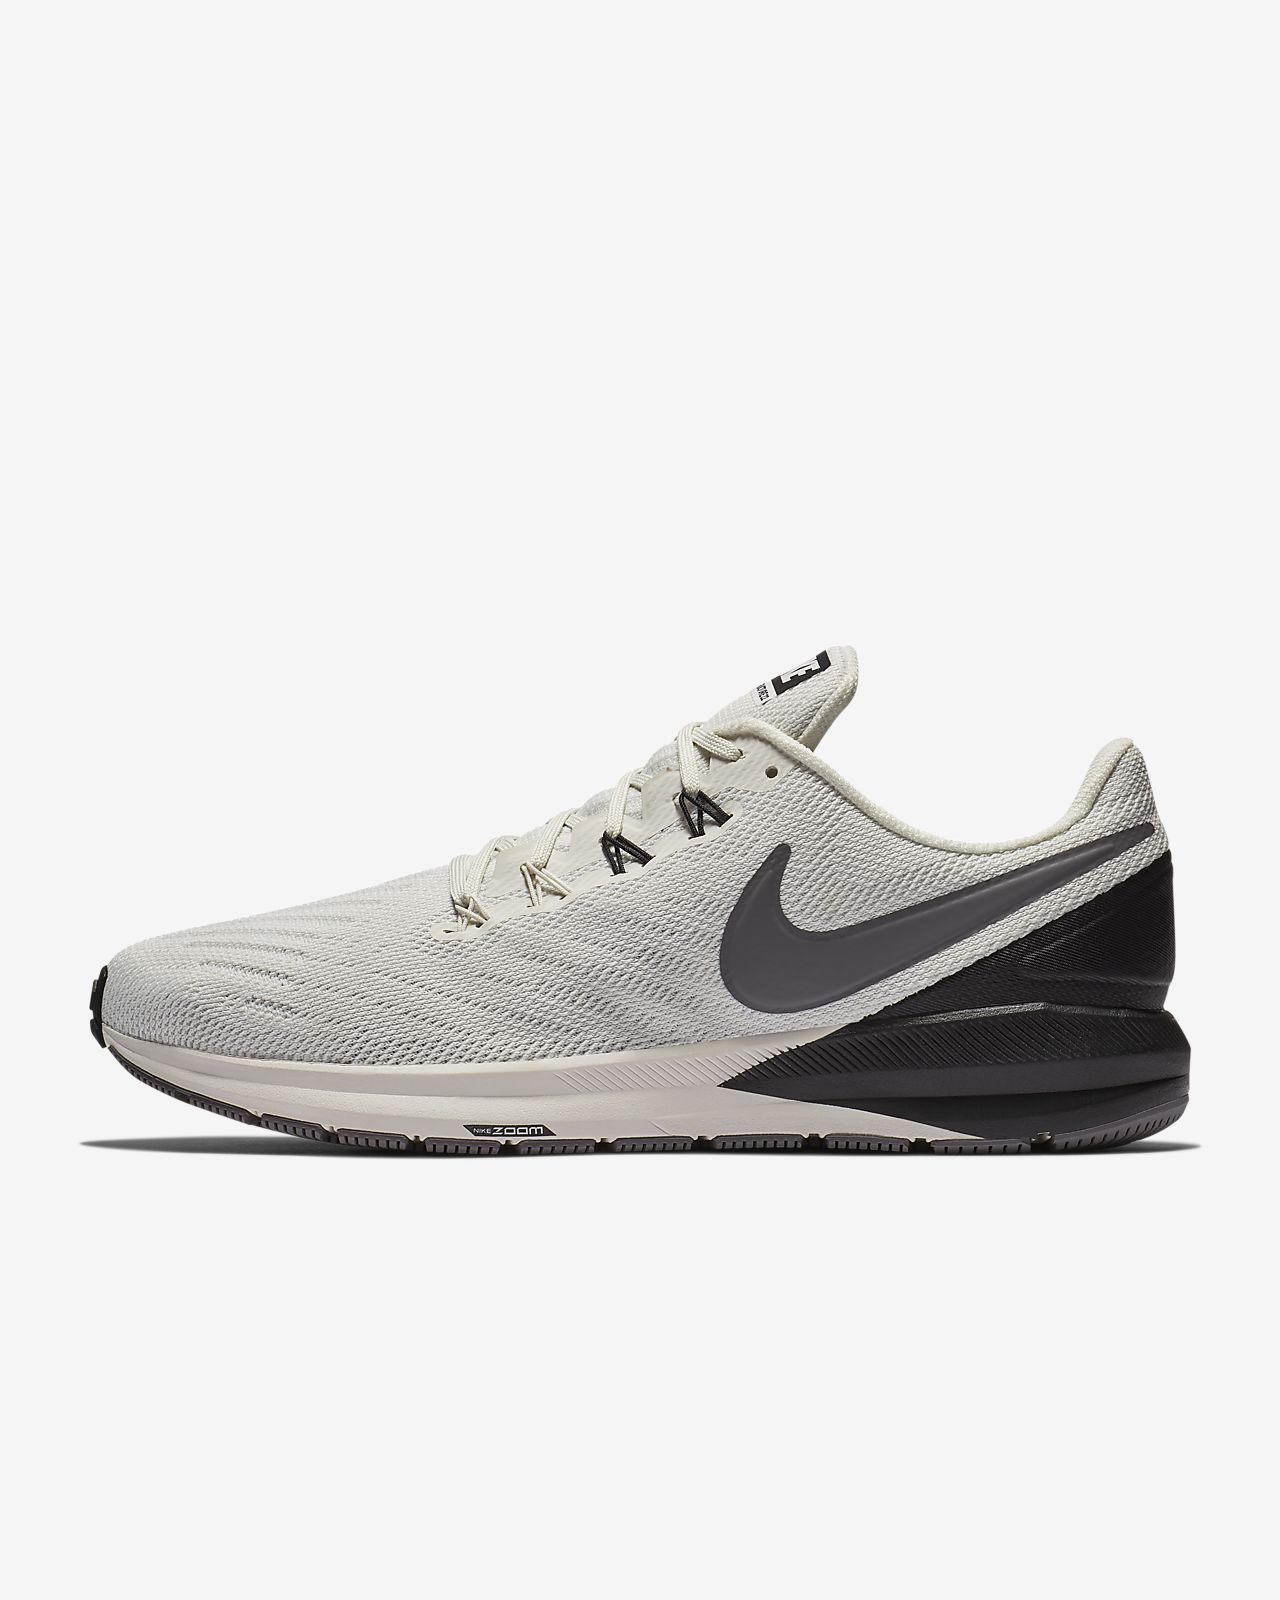 Chaussure De Structure Air 22 Zoom Pour Homme Nike Running dCeQWErxoB